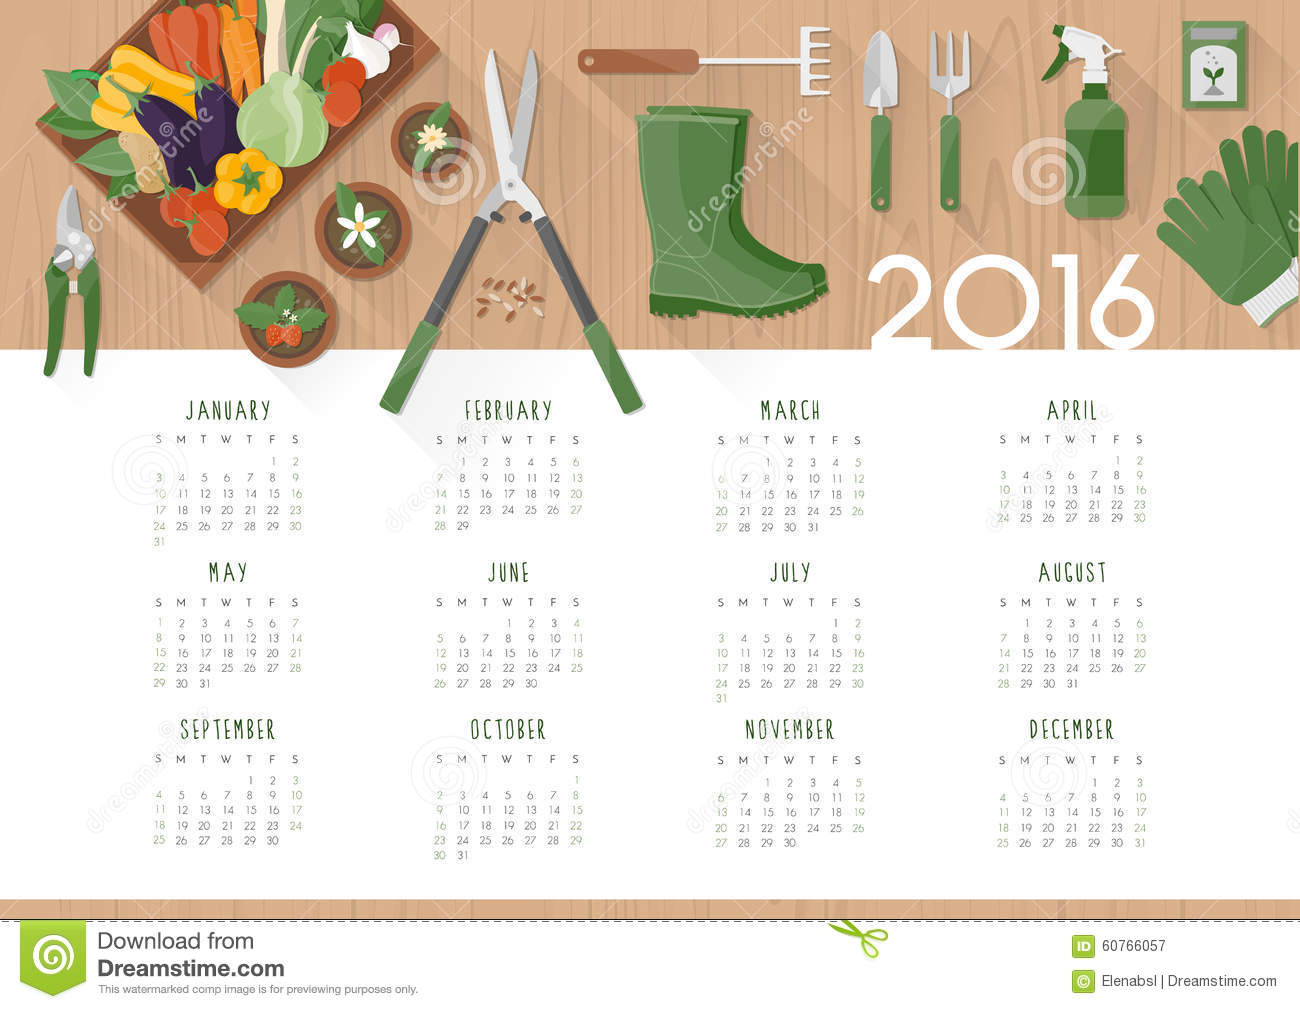 Gardening calendar 2016 stock vector image 60766057 for Top gardening tools 2016